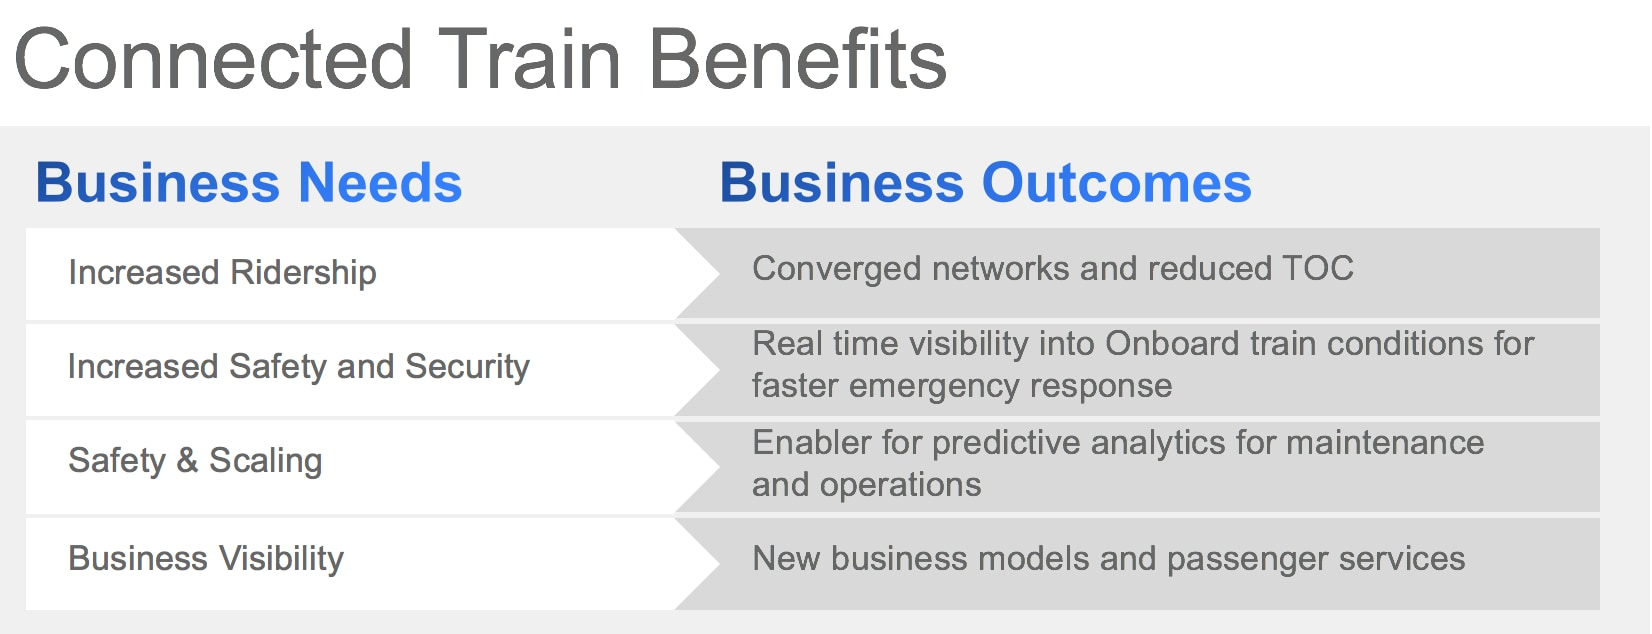 bulleted list of both business needs and business outcomes